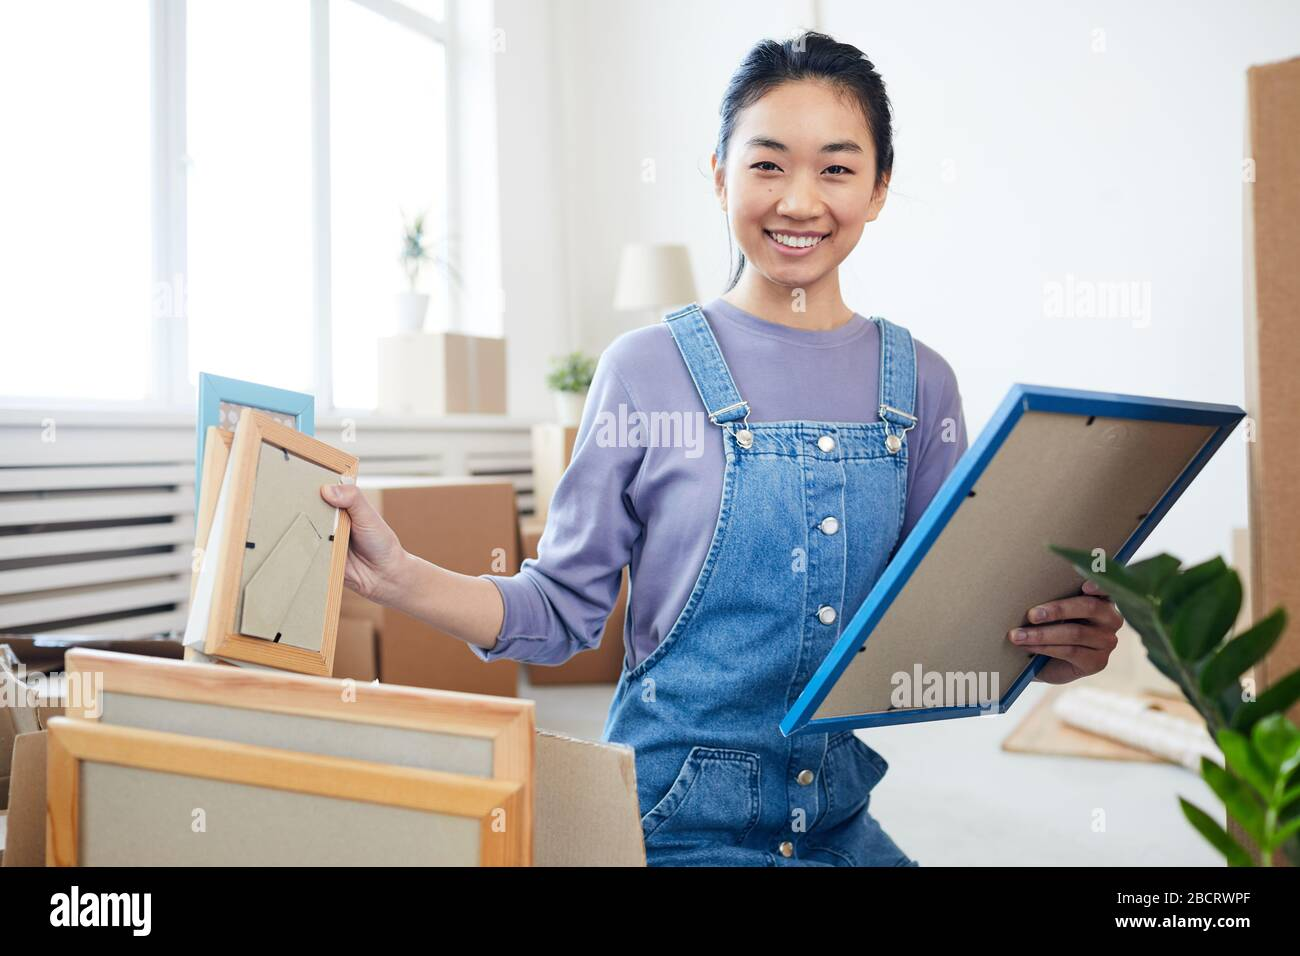 Portrait of young Asian woman packing boxes and smiling at camera excited for moving to new house or apartment, copy space Stock Photo